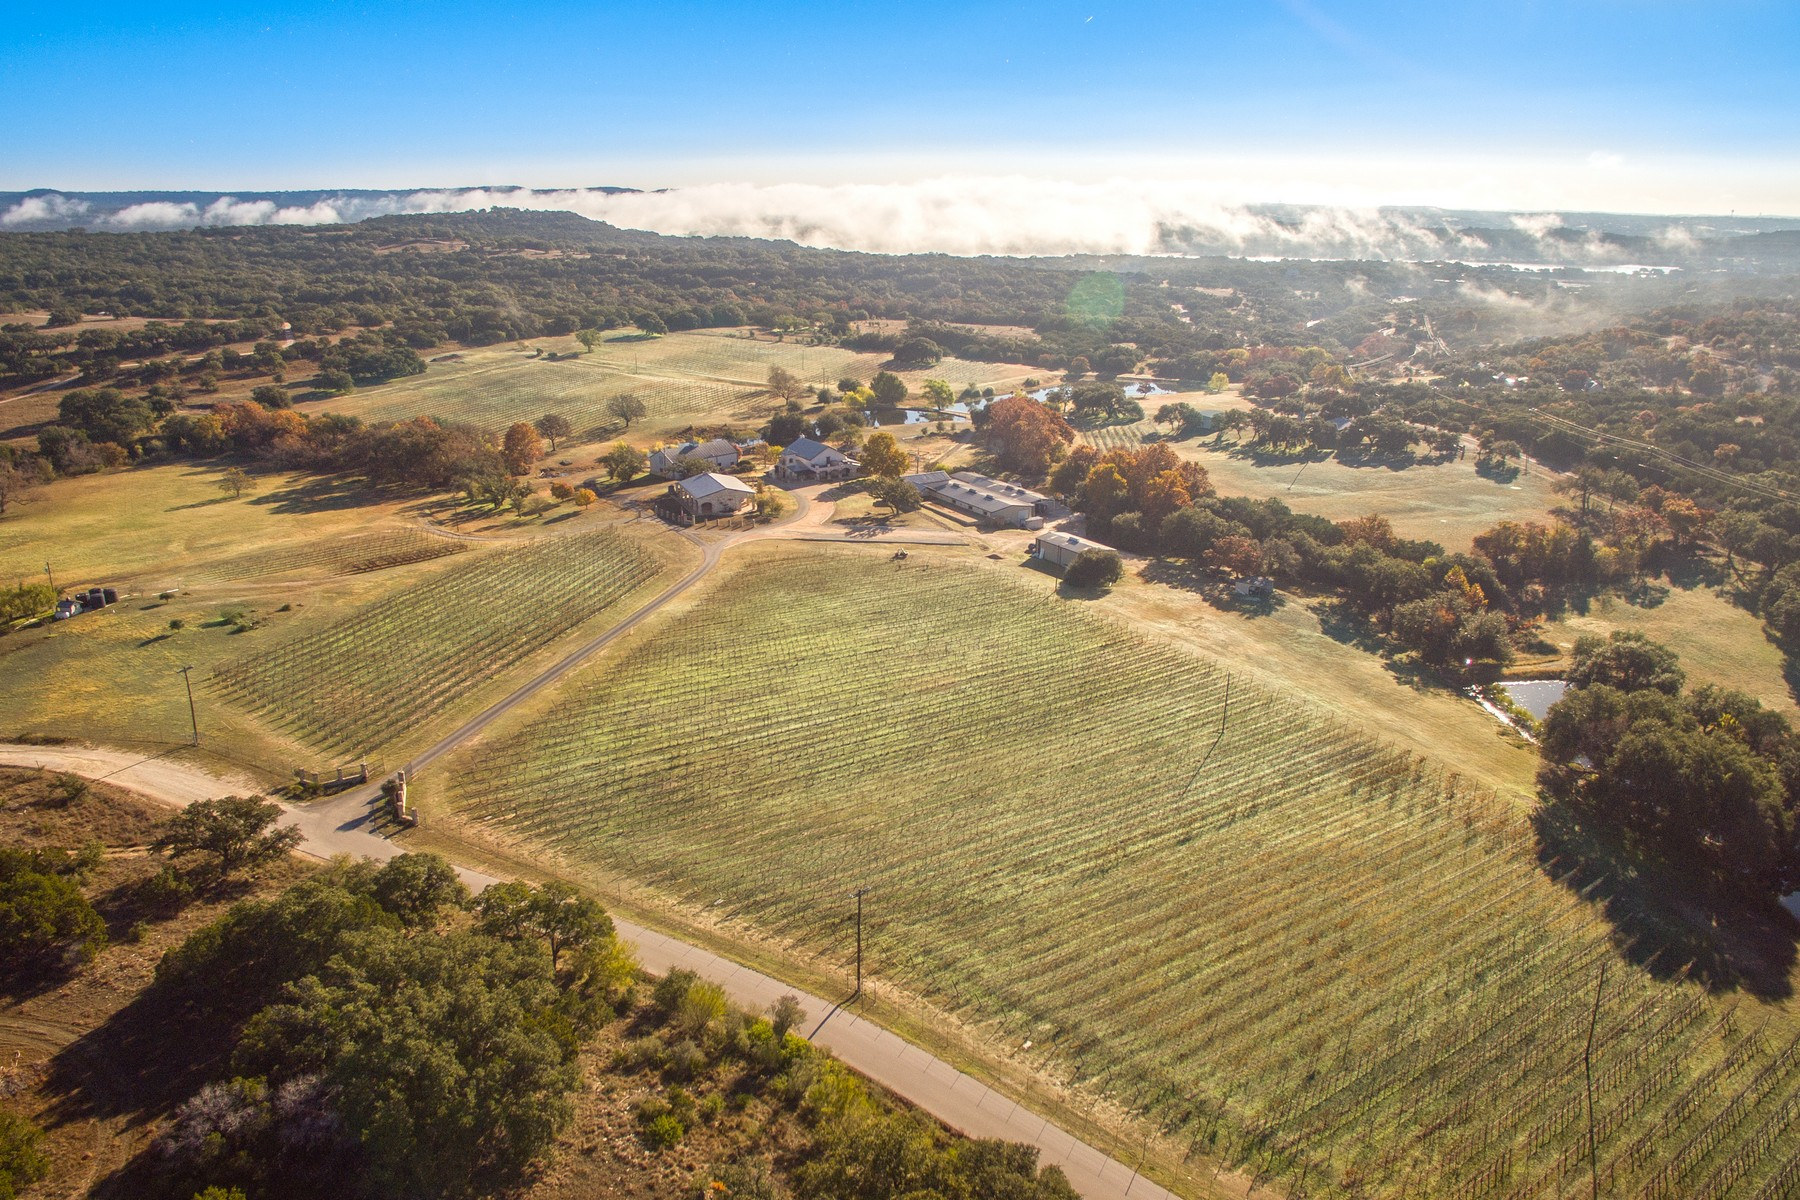 Single Family Home for Sale at The Crown Jewel of Texas Wineries 24912 Singleton Bend East Rd Marble Falls, Texas, 78654 United States